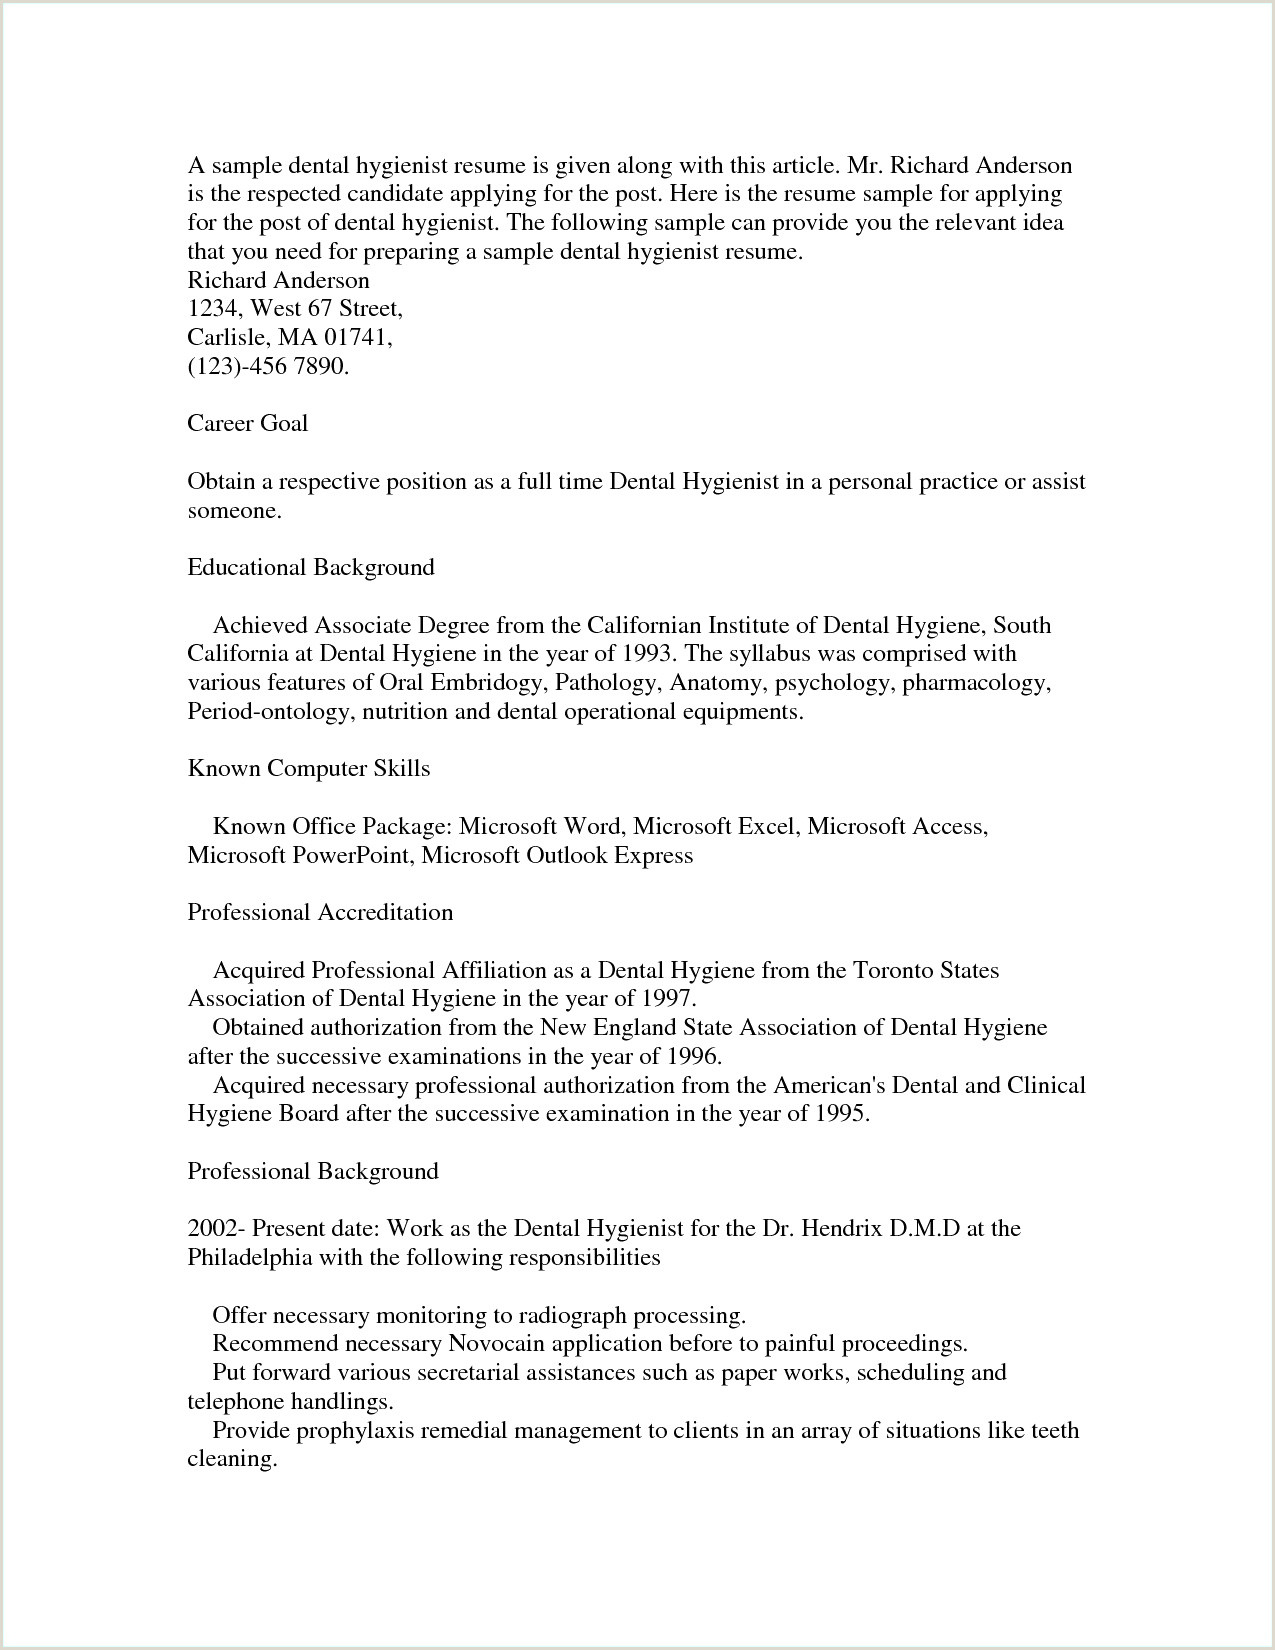 Dental Hygienist Resume Hairstyles Dental assistant Resume Very Good Nurse